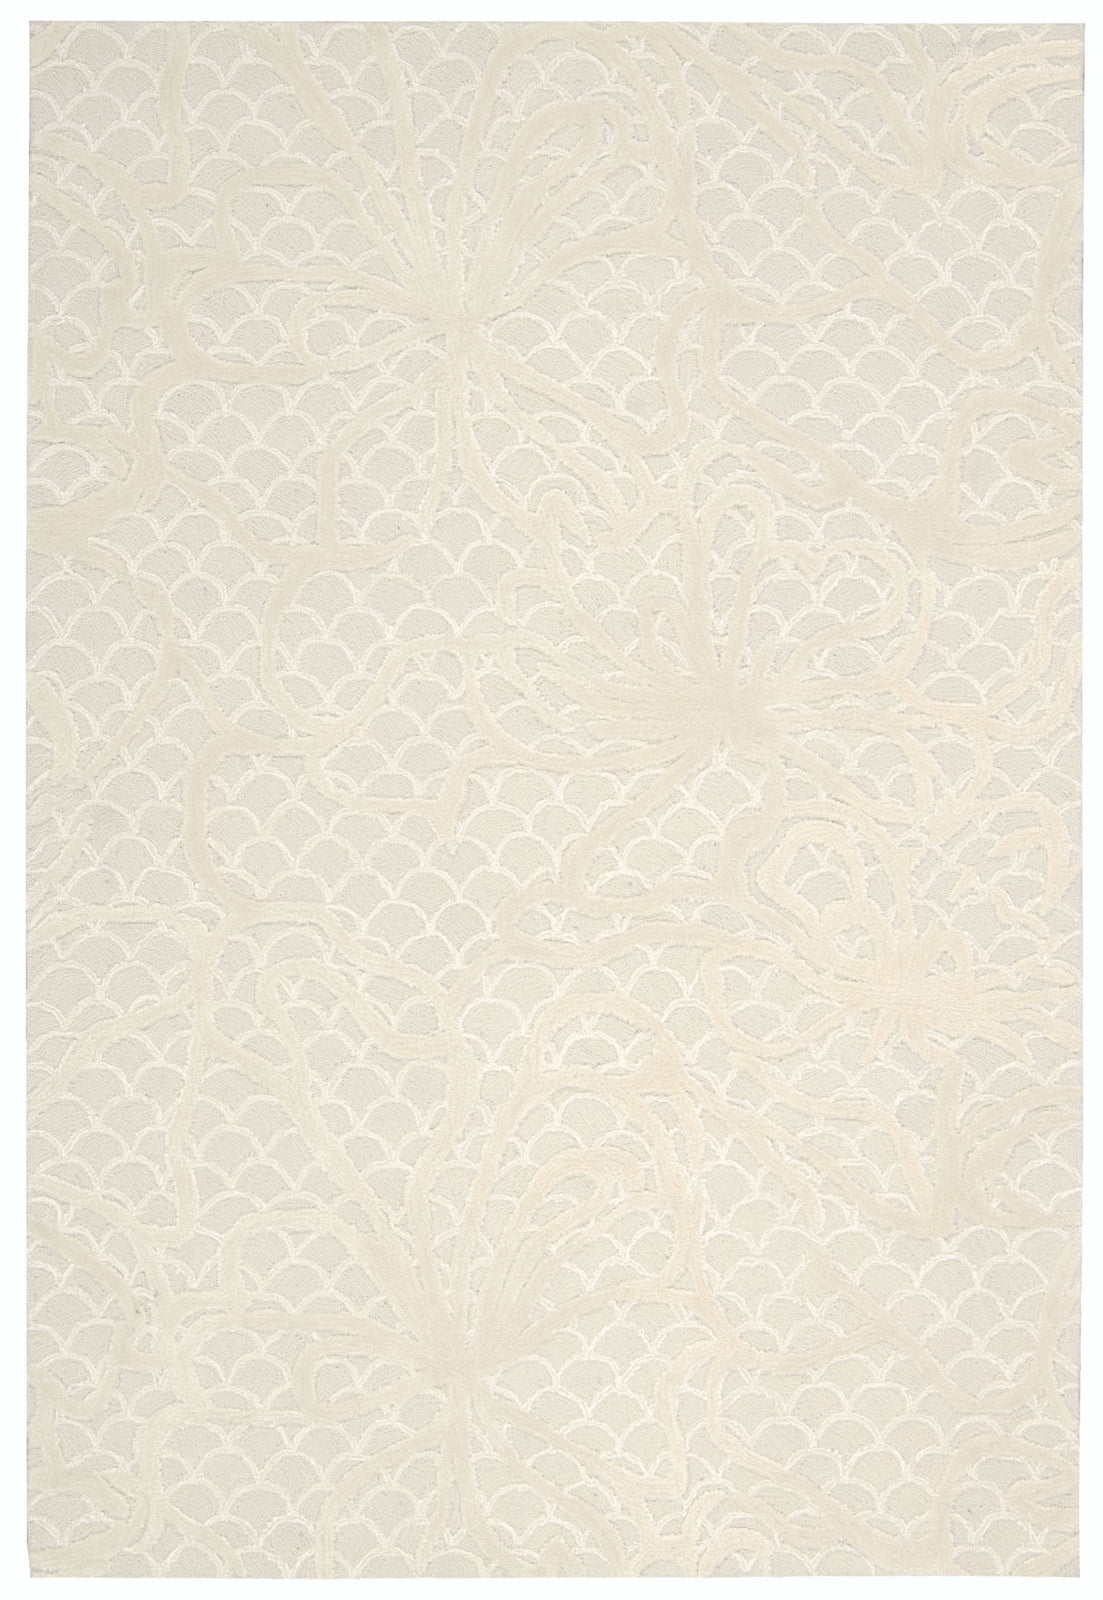 Nourison Escalade ESC12 Spa Area Rug main image